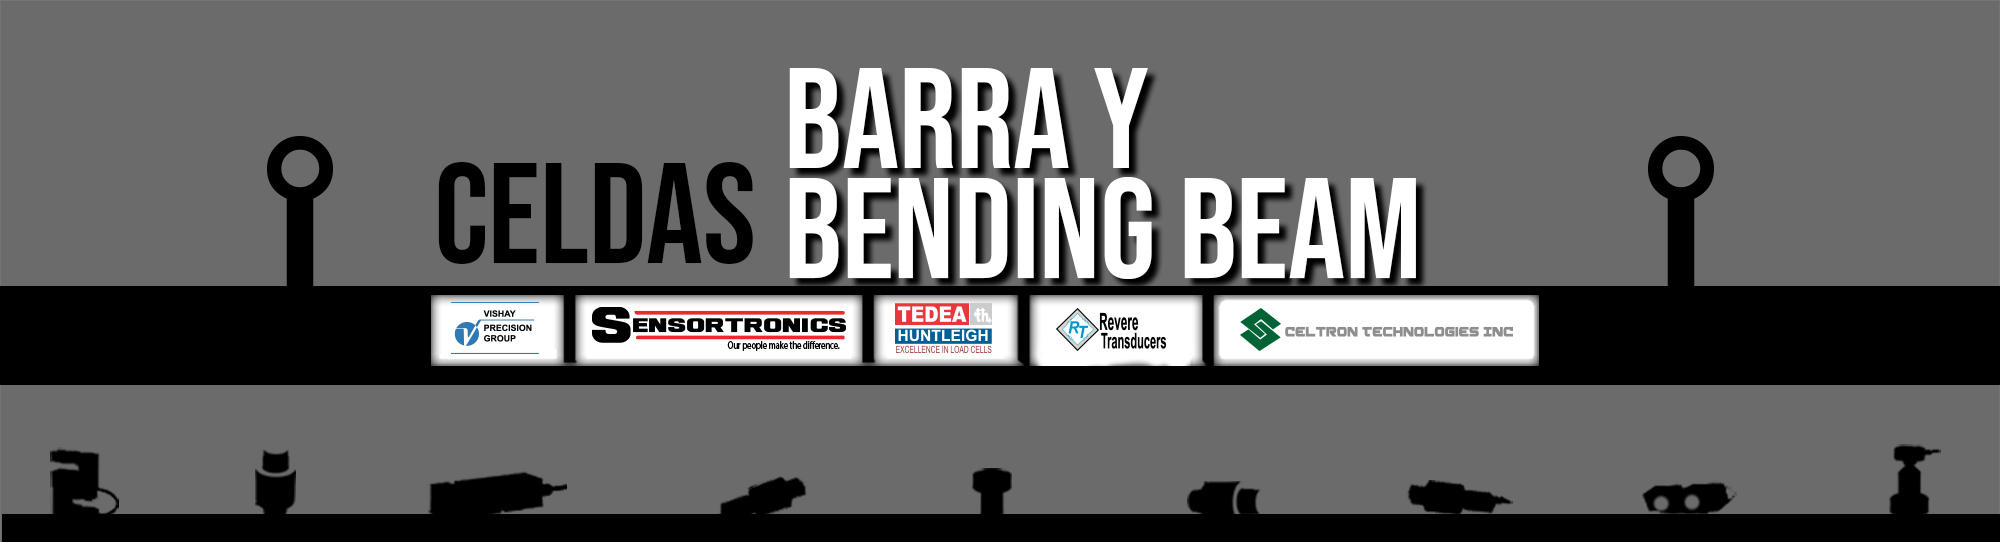 BARRA Y BENDING CELL